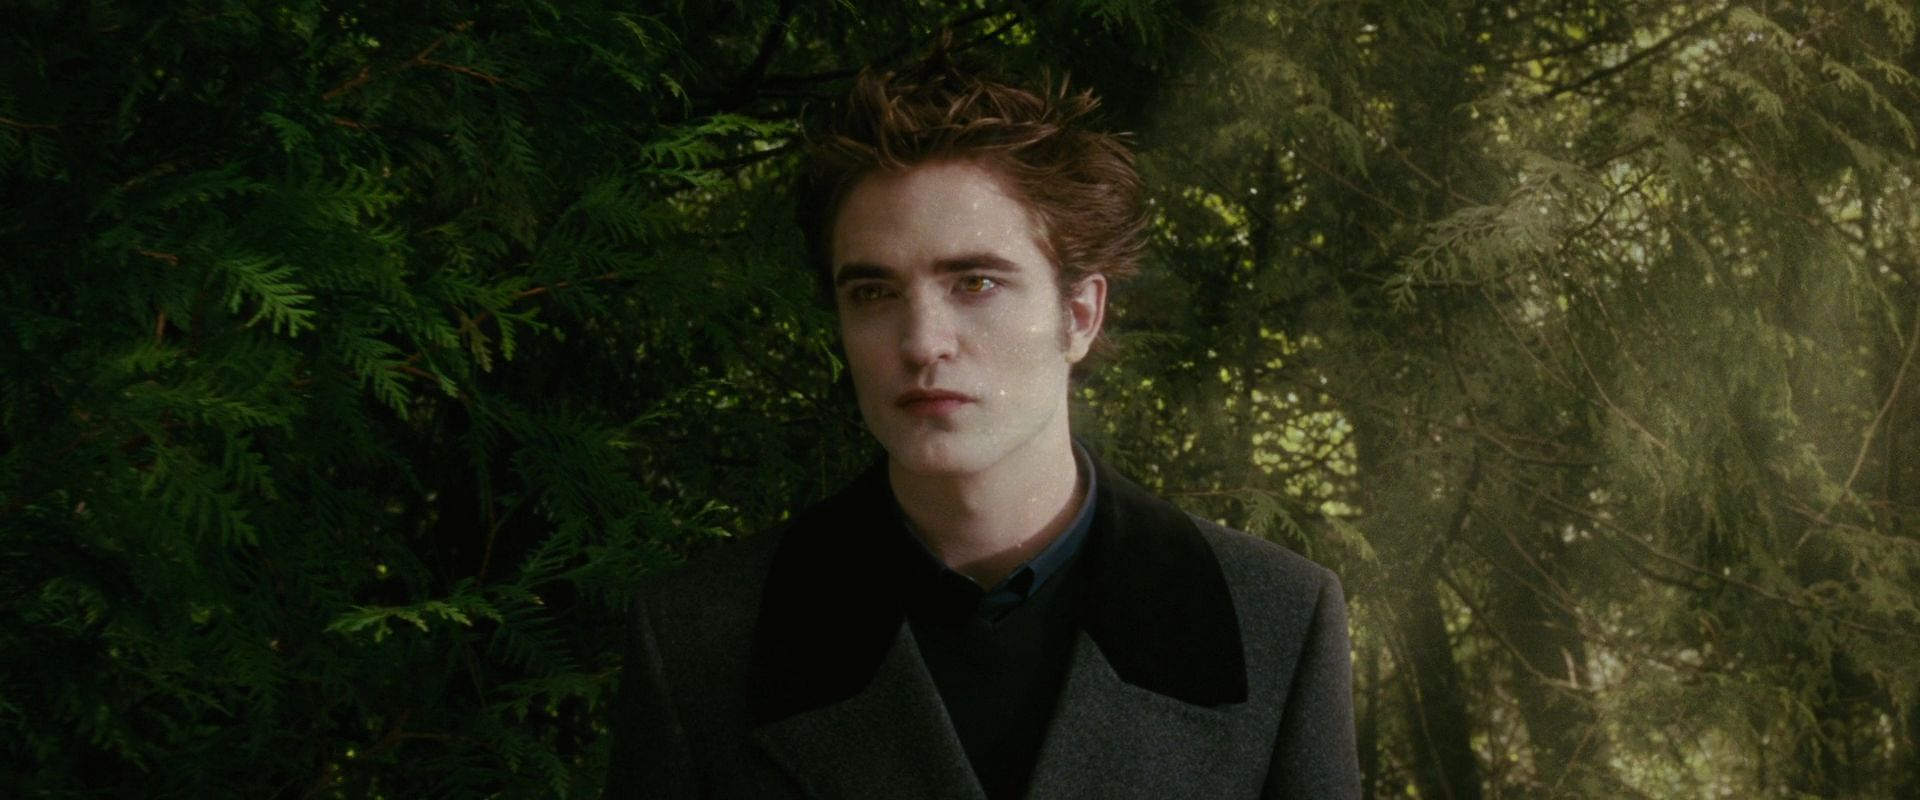 New Moon Screencaps Edward Cullen Image 15114298 Fanpop